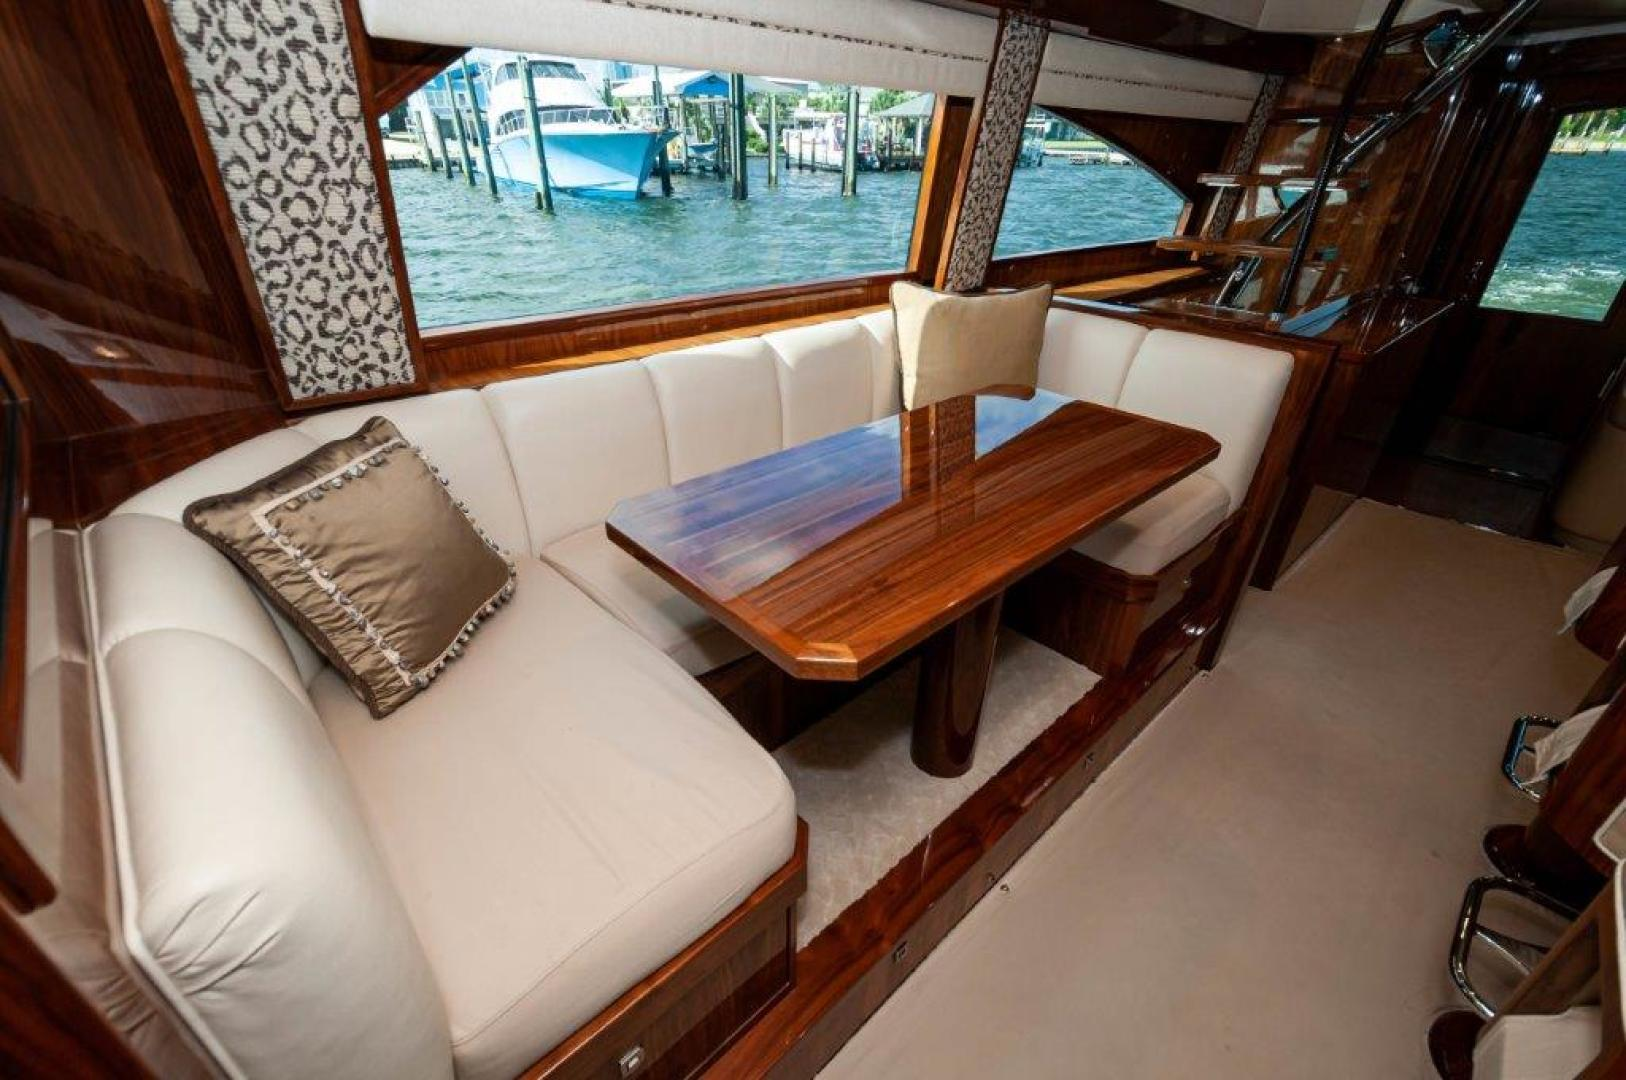 Viking-72 Enclosed Bridge 2017-SHARE E Orange Beach-Alabama-United States-2017 72 EB Viking SHARE-E  Dining-1233228 | Thumbnail